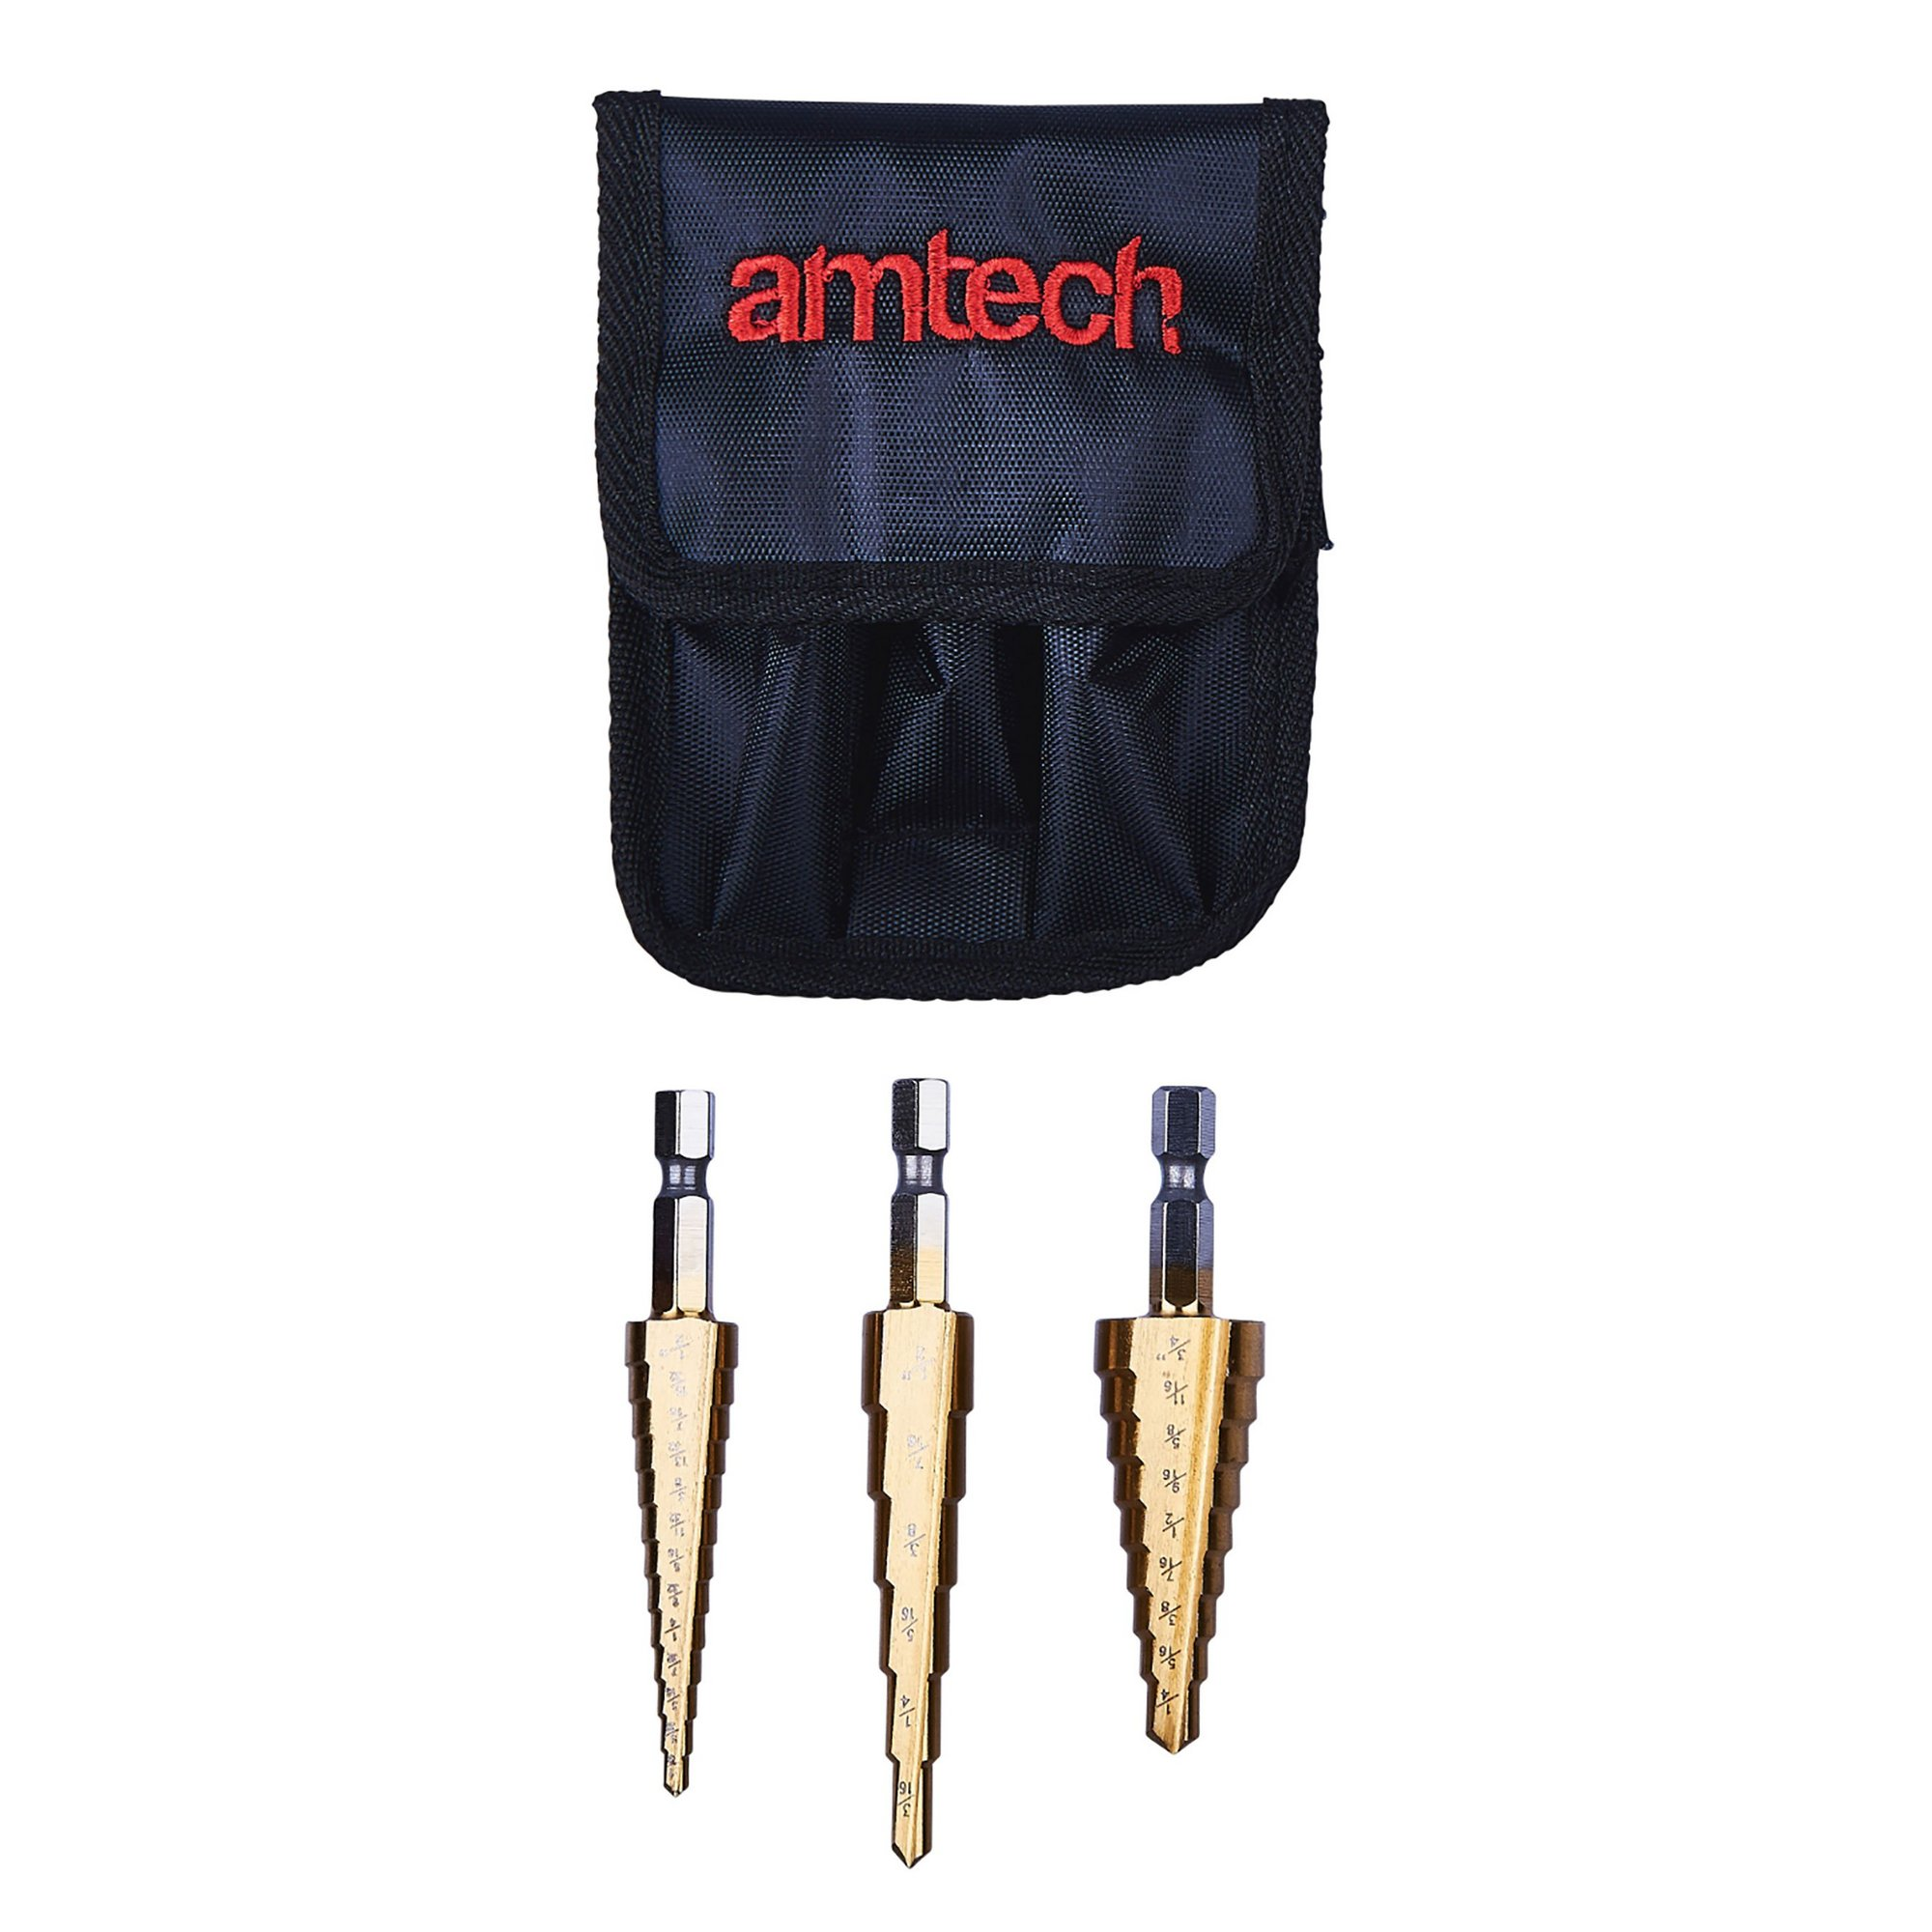 Image of 3 Piece High Speed Steel Step Drill Set